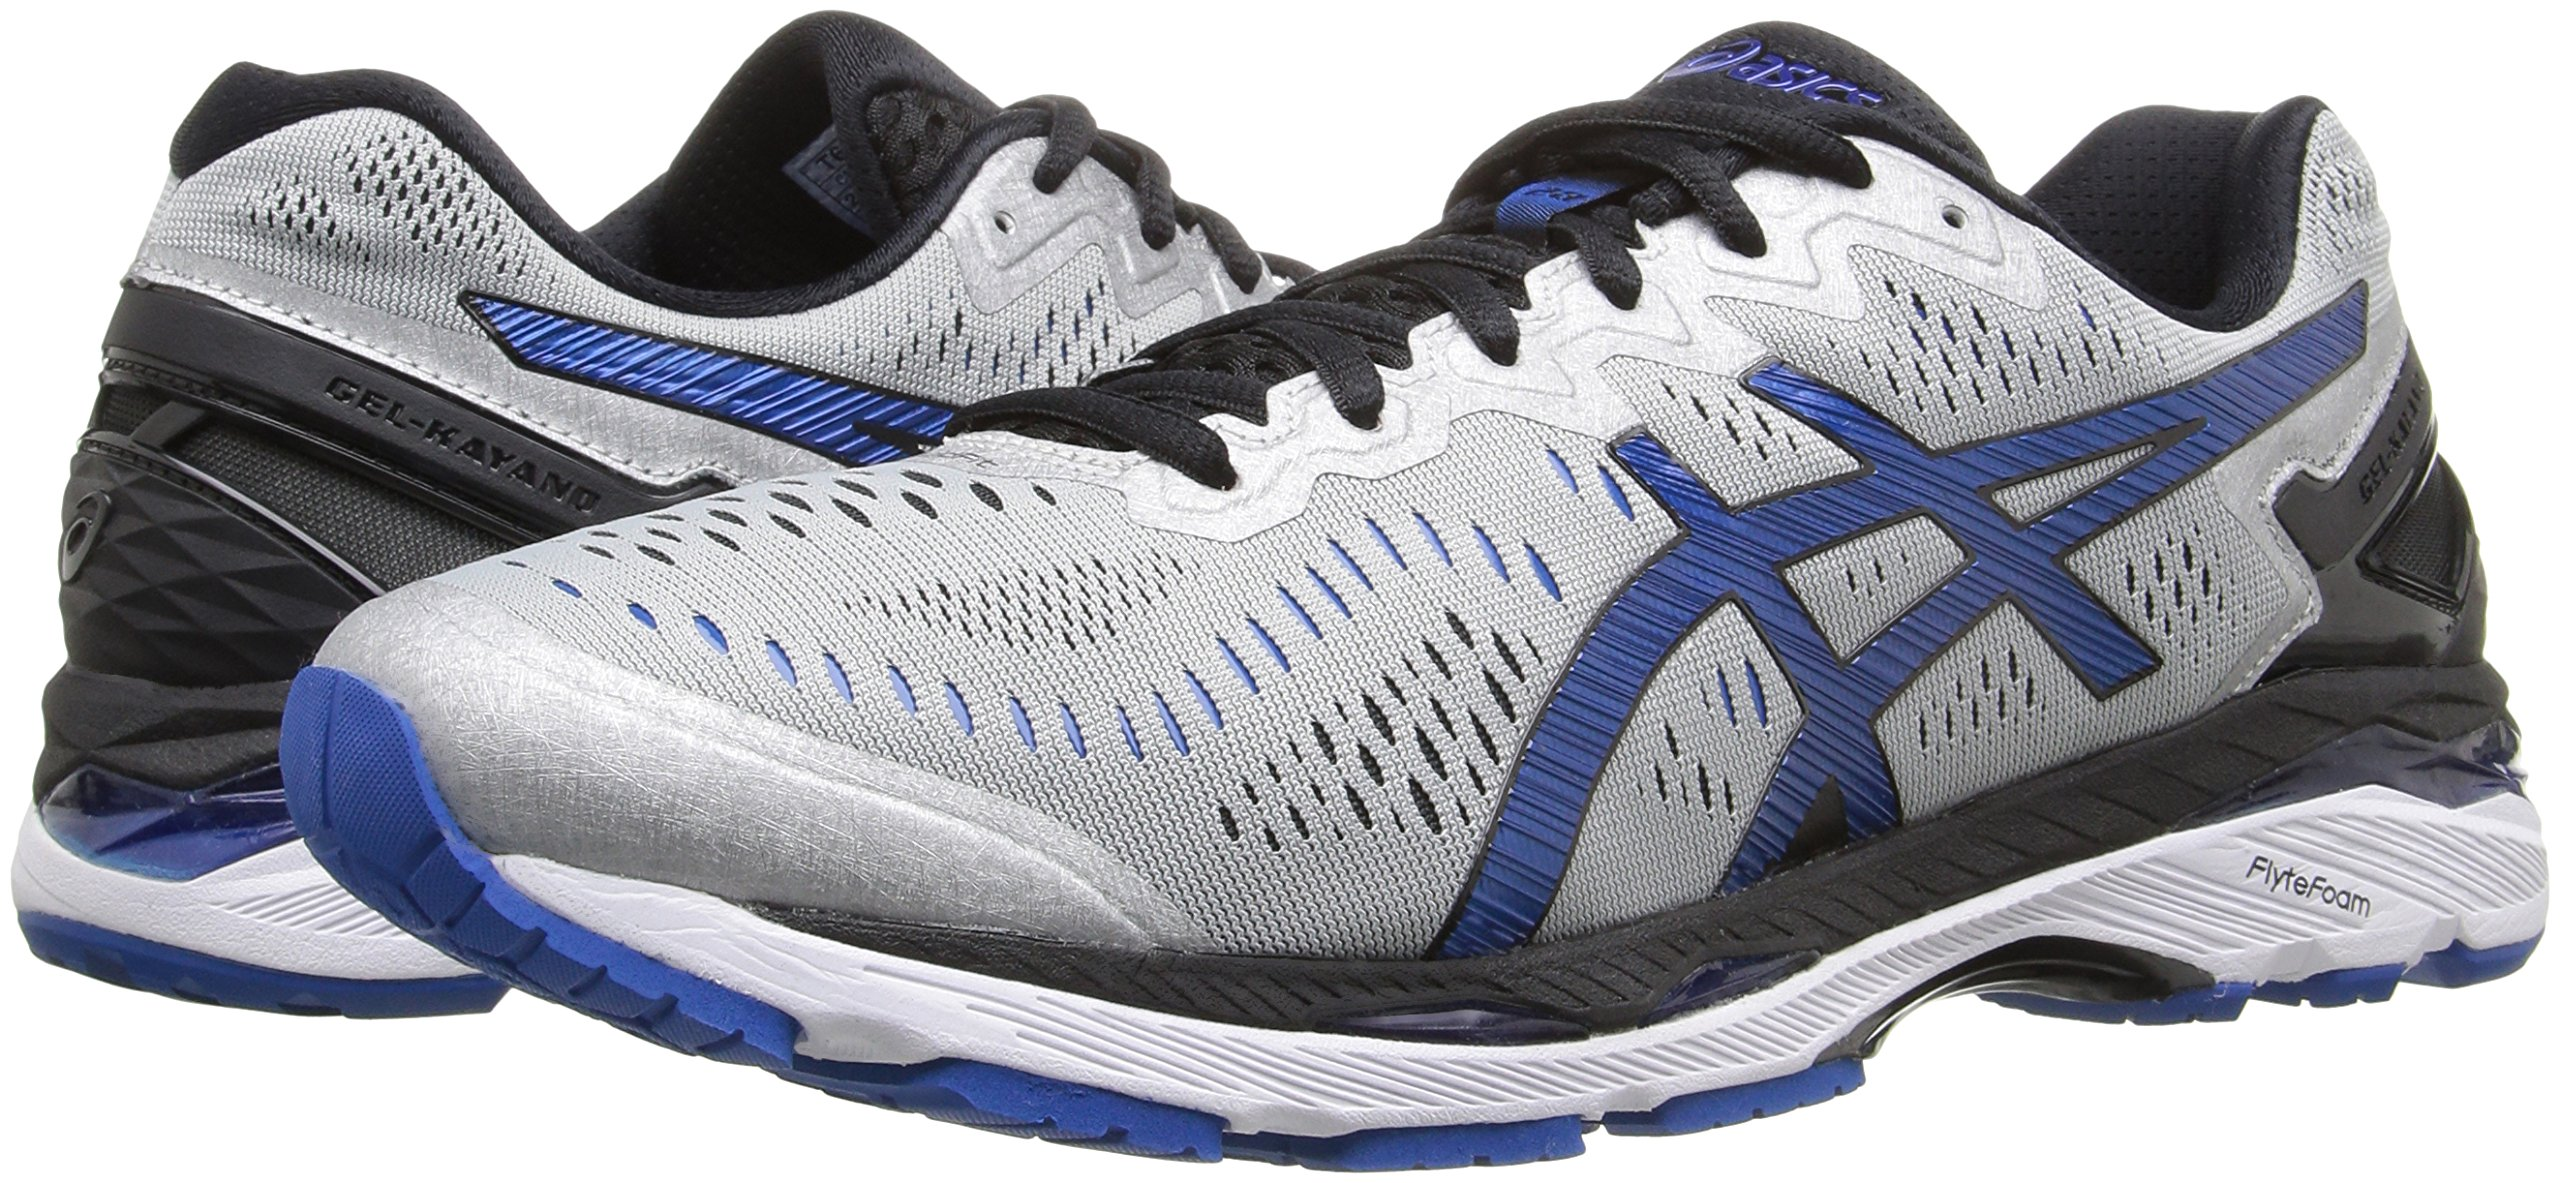 Asics Men S Gel Kayano  Shoe Silver Imperial Black